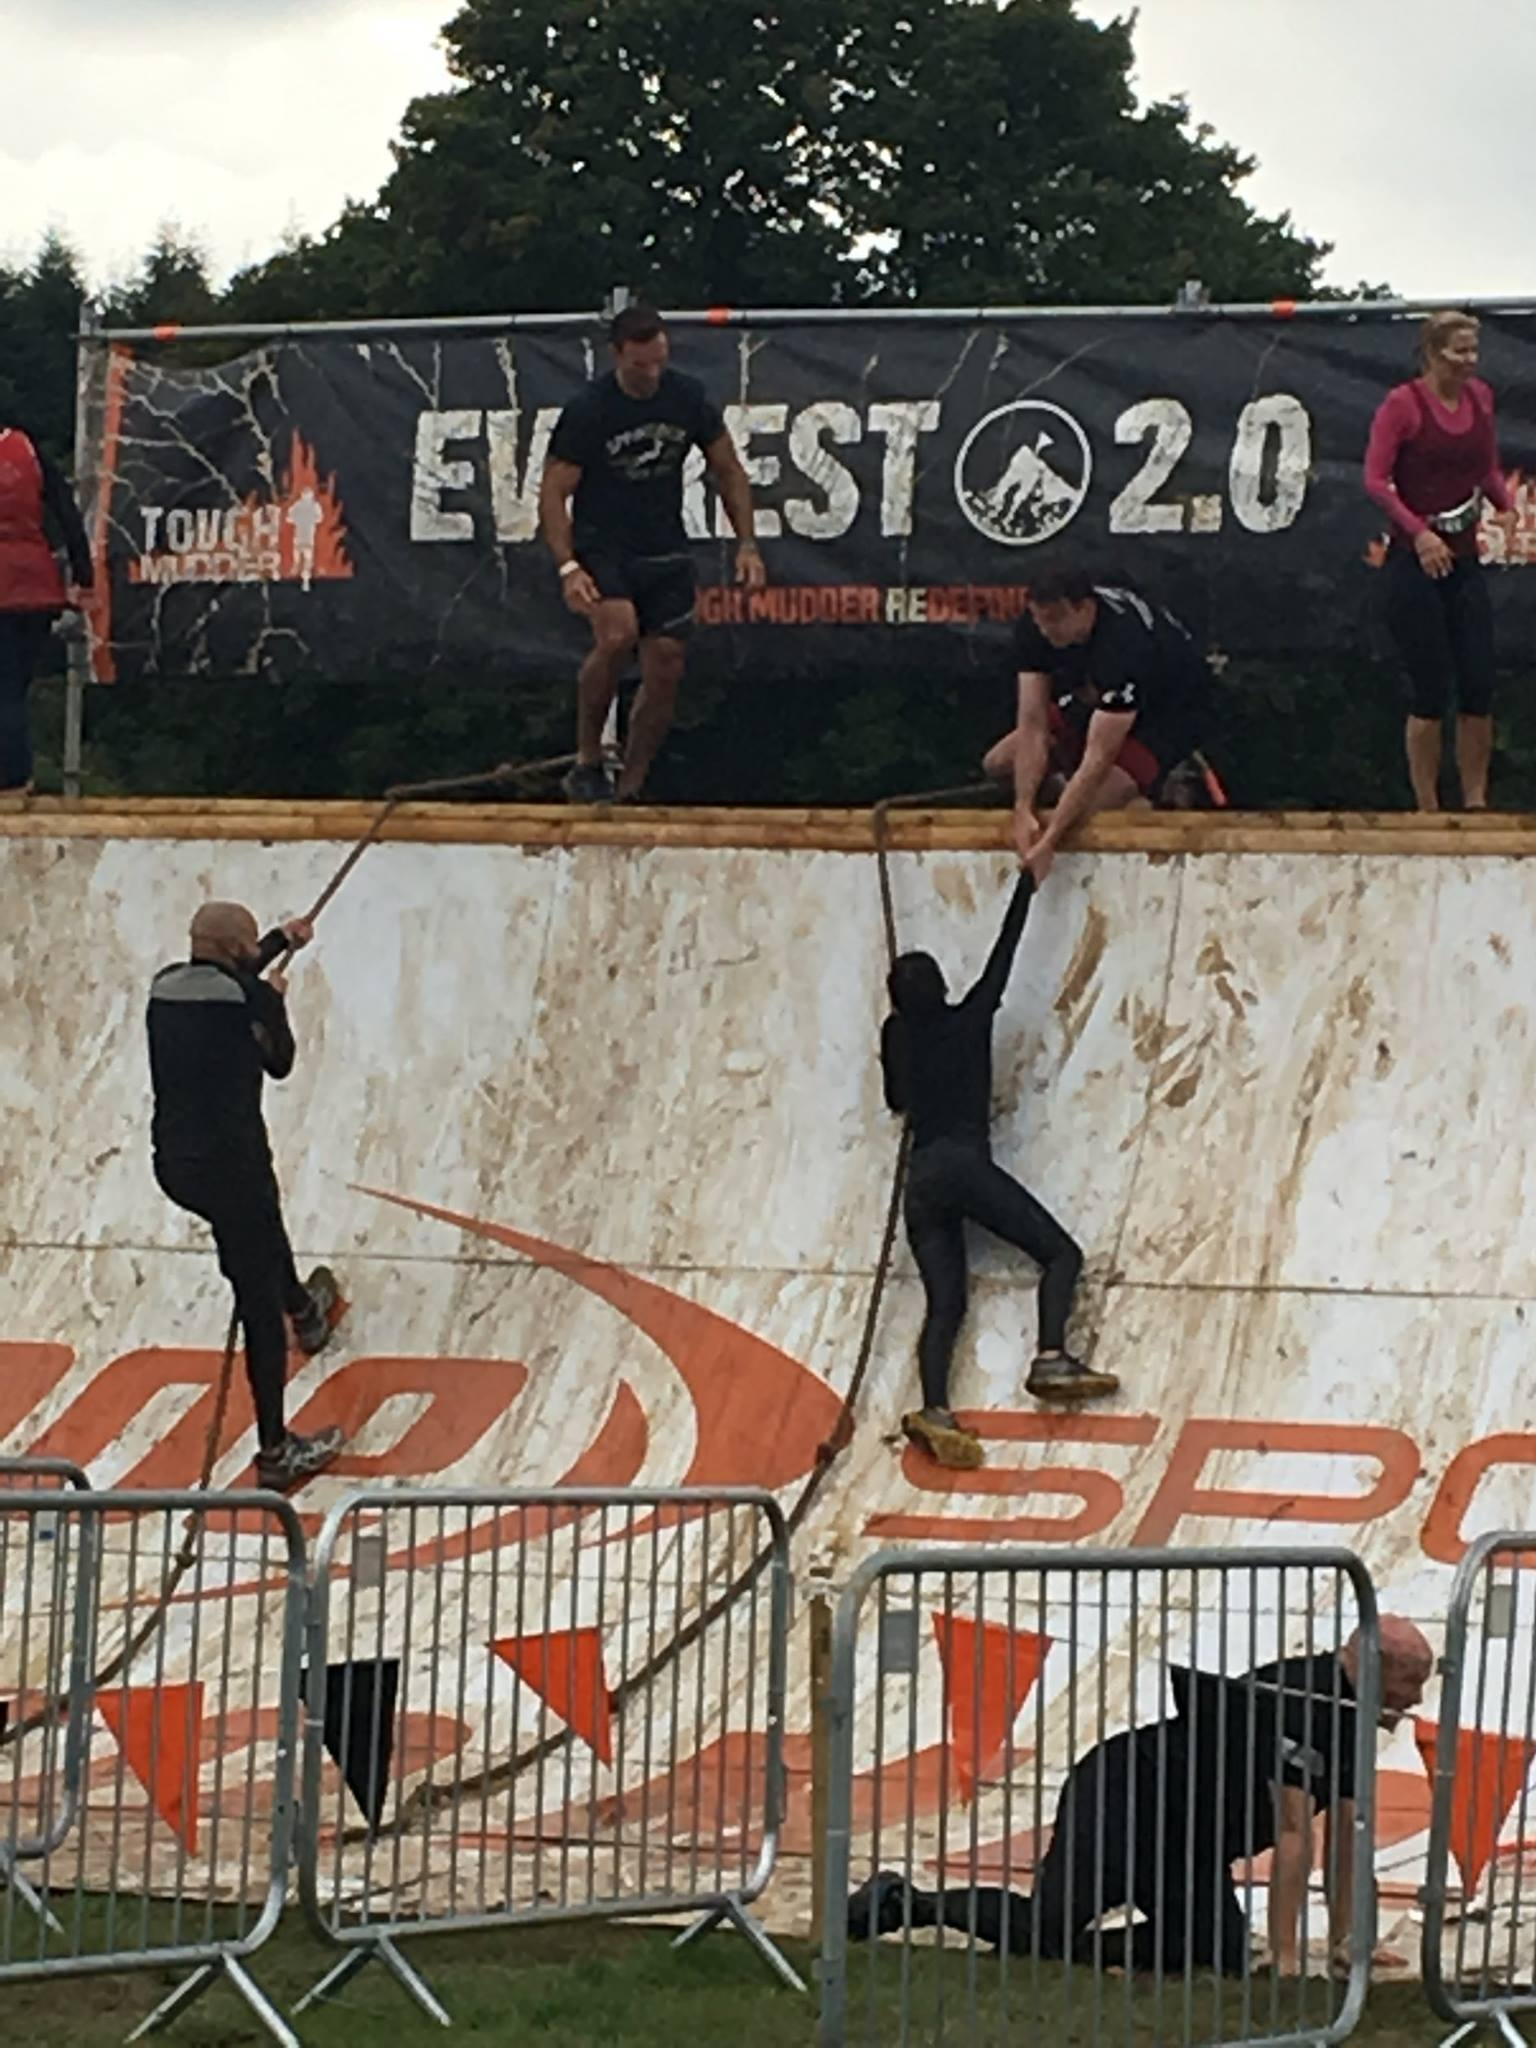 Tough Mudder Everest 2.0 obstacle